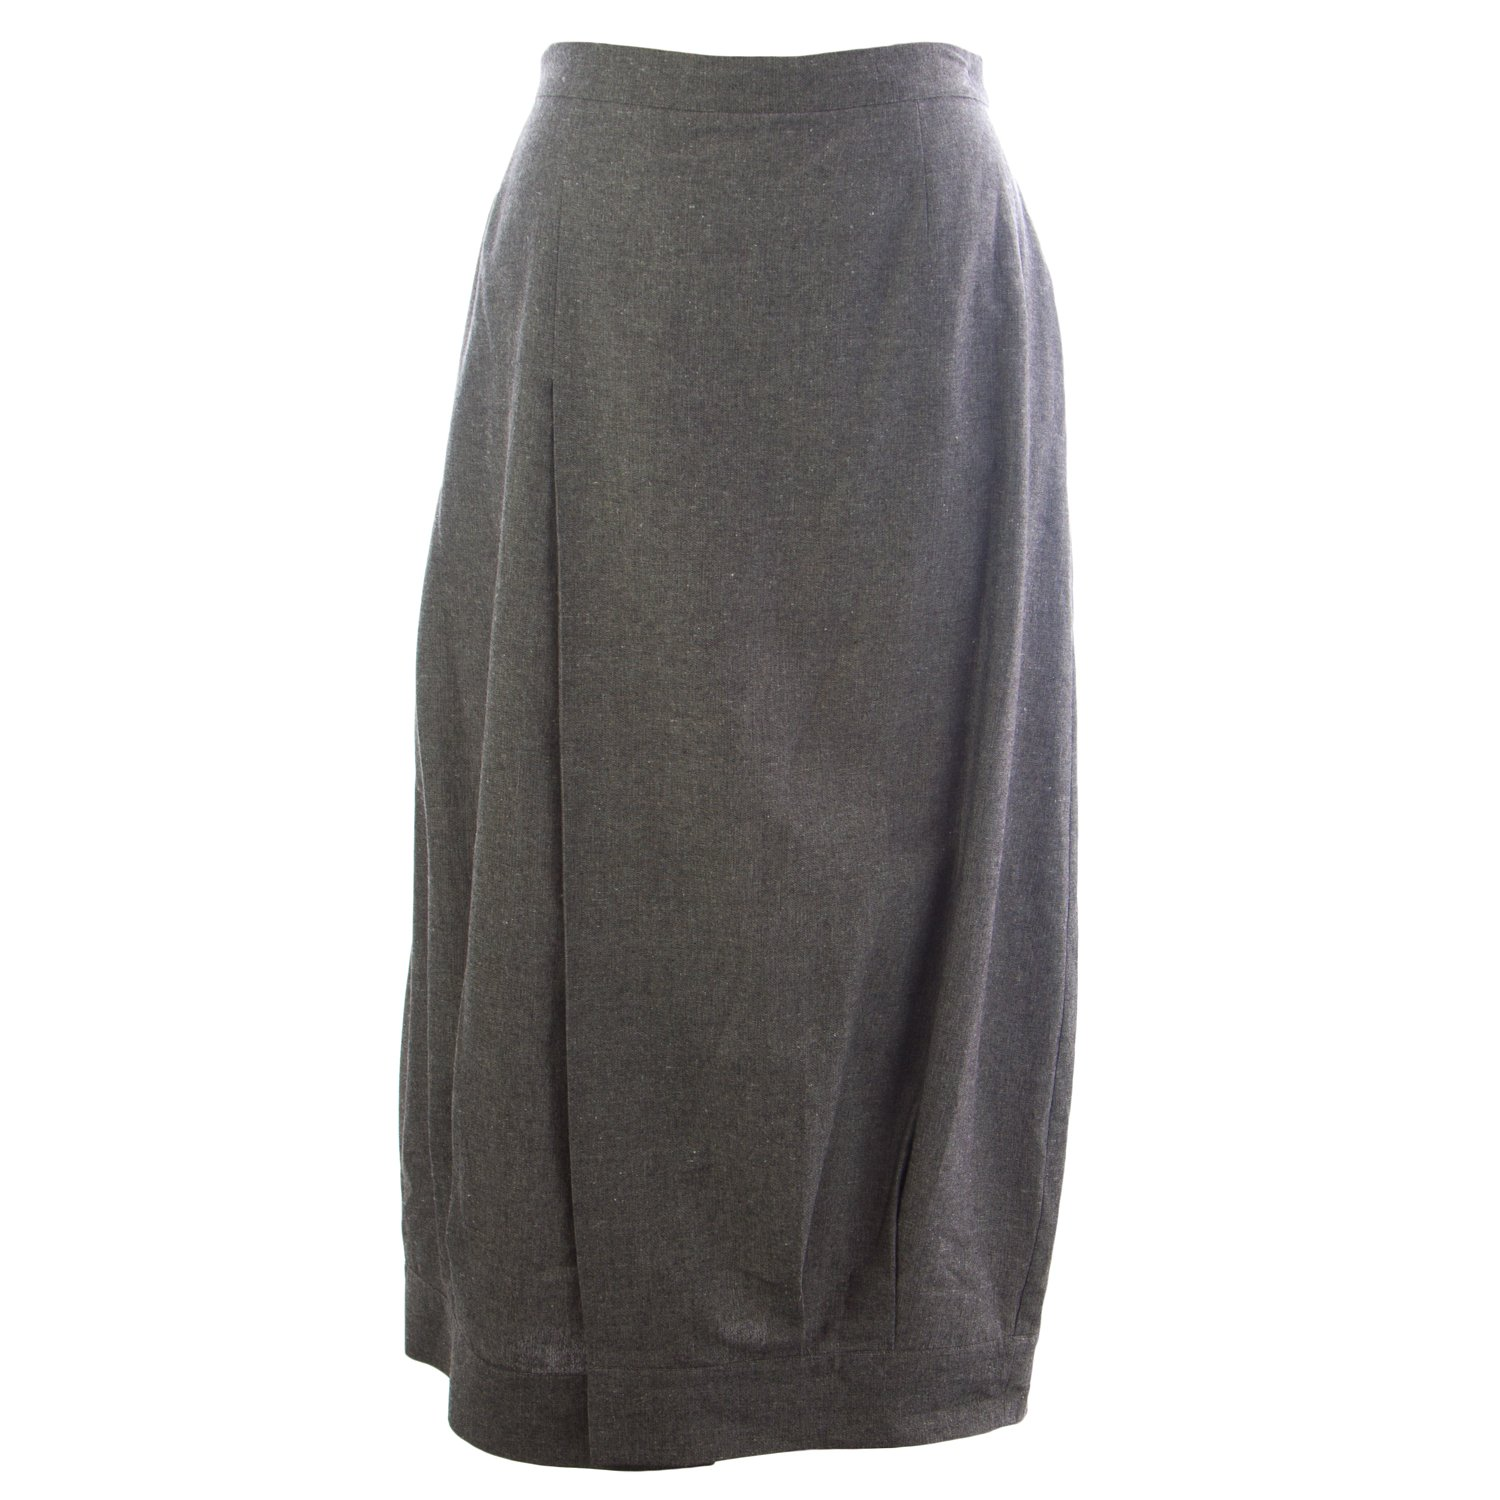 Marina Rinaldi Women's Cocco Loose Pencil Skirt 20W / 29 Grey